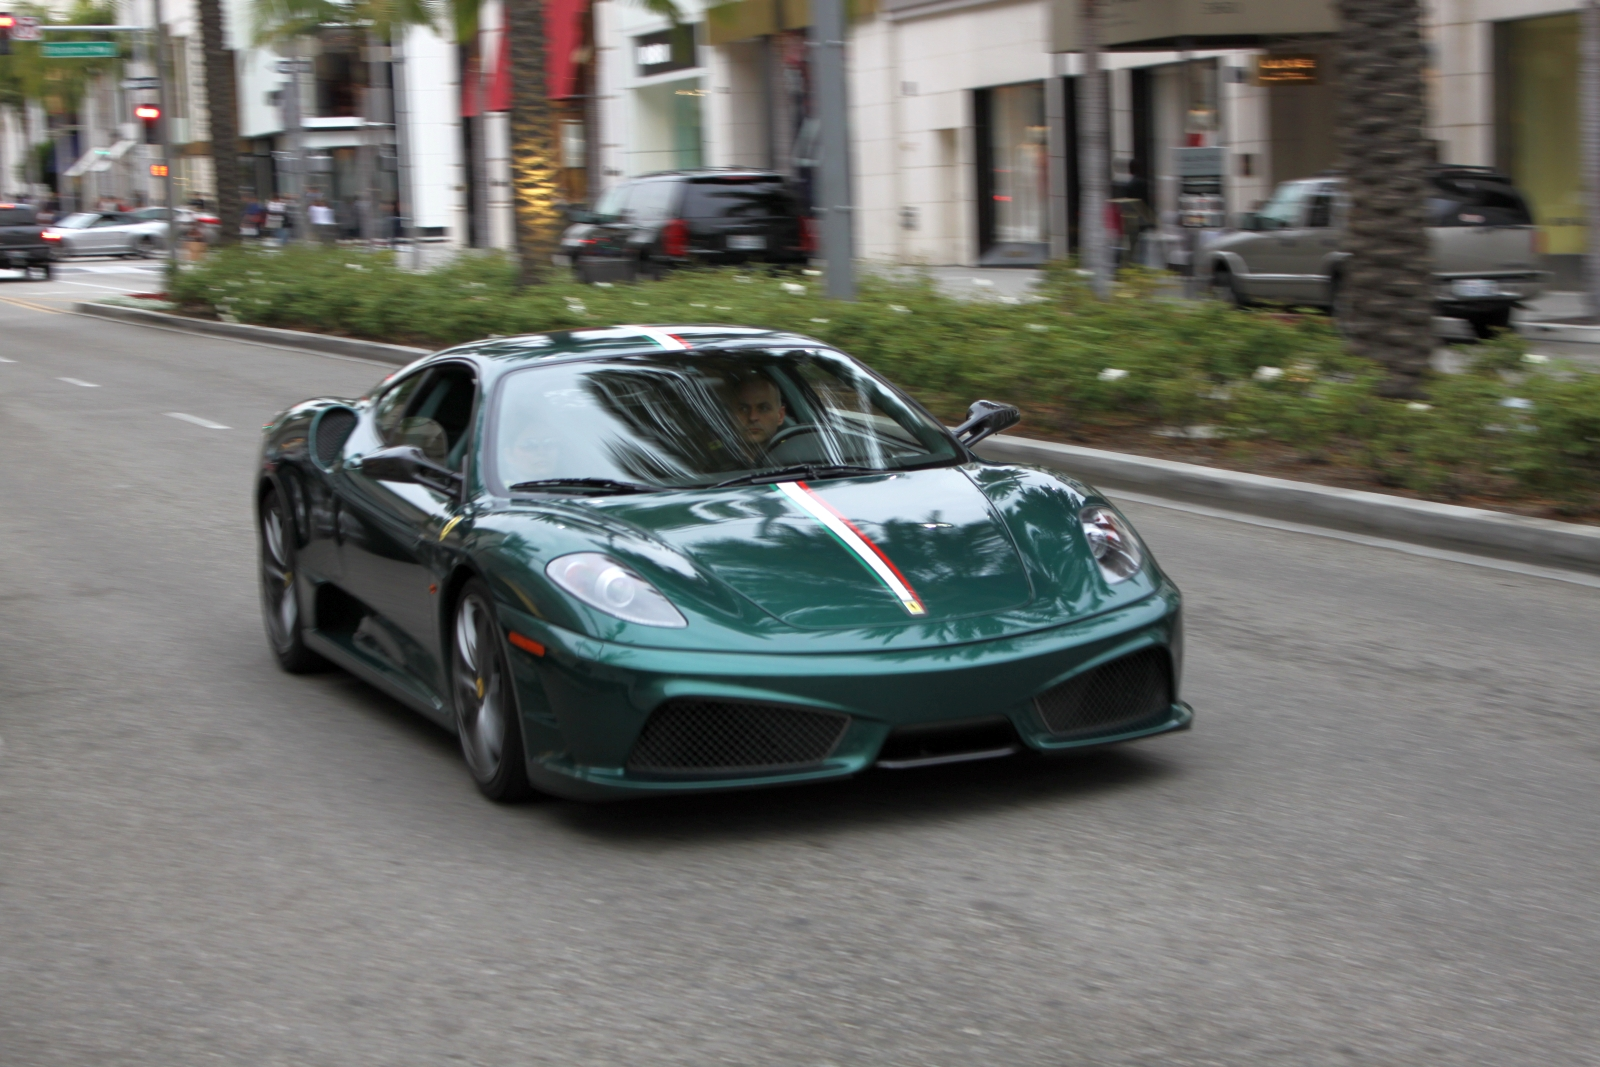 Color car los angeles - Green Is Not A Color You Associate With Ferraris But It Works Surprisingly Well On This 430 Scuderia Here Of Course If You Re On Rodeo Drive